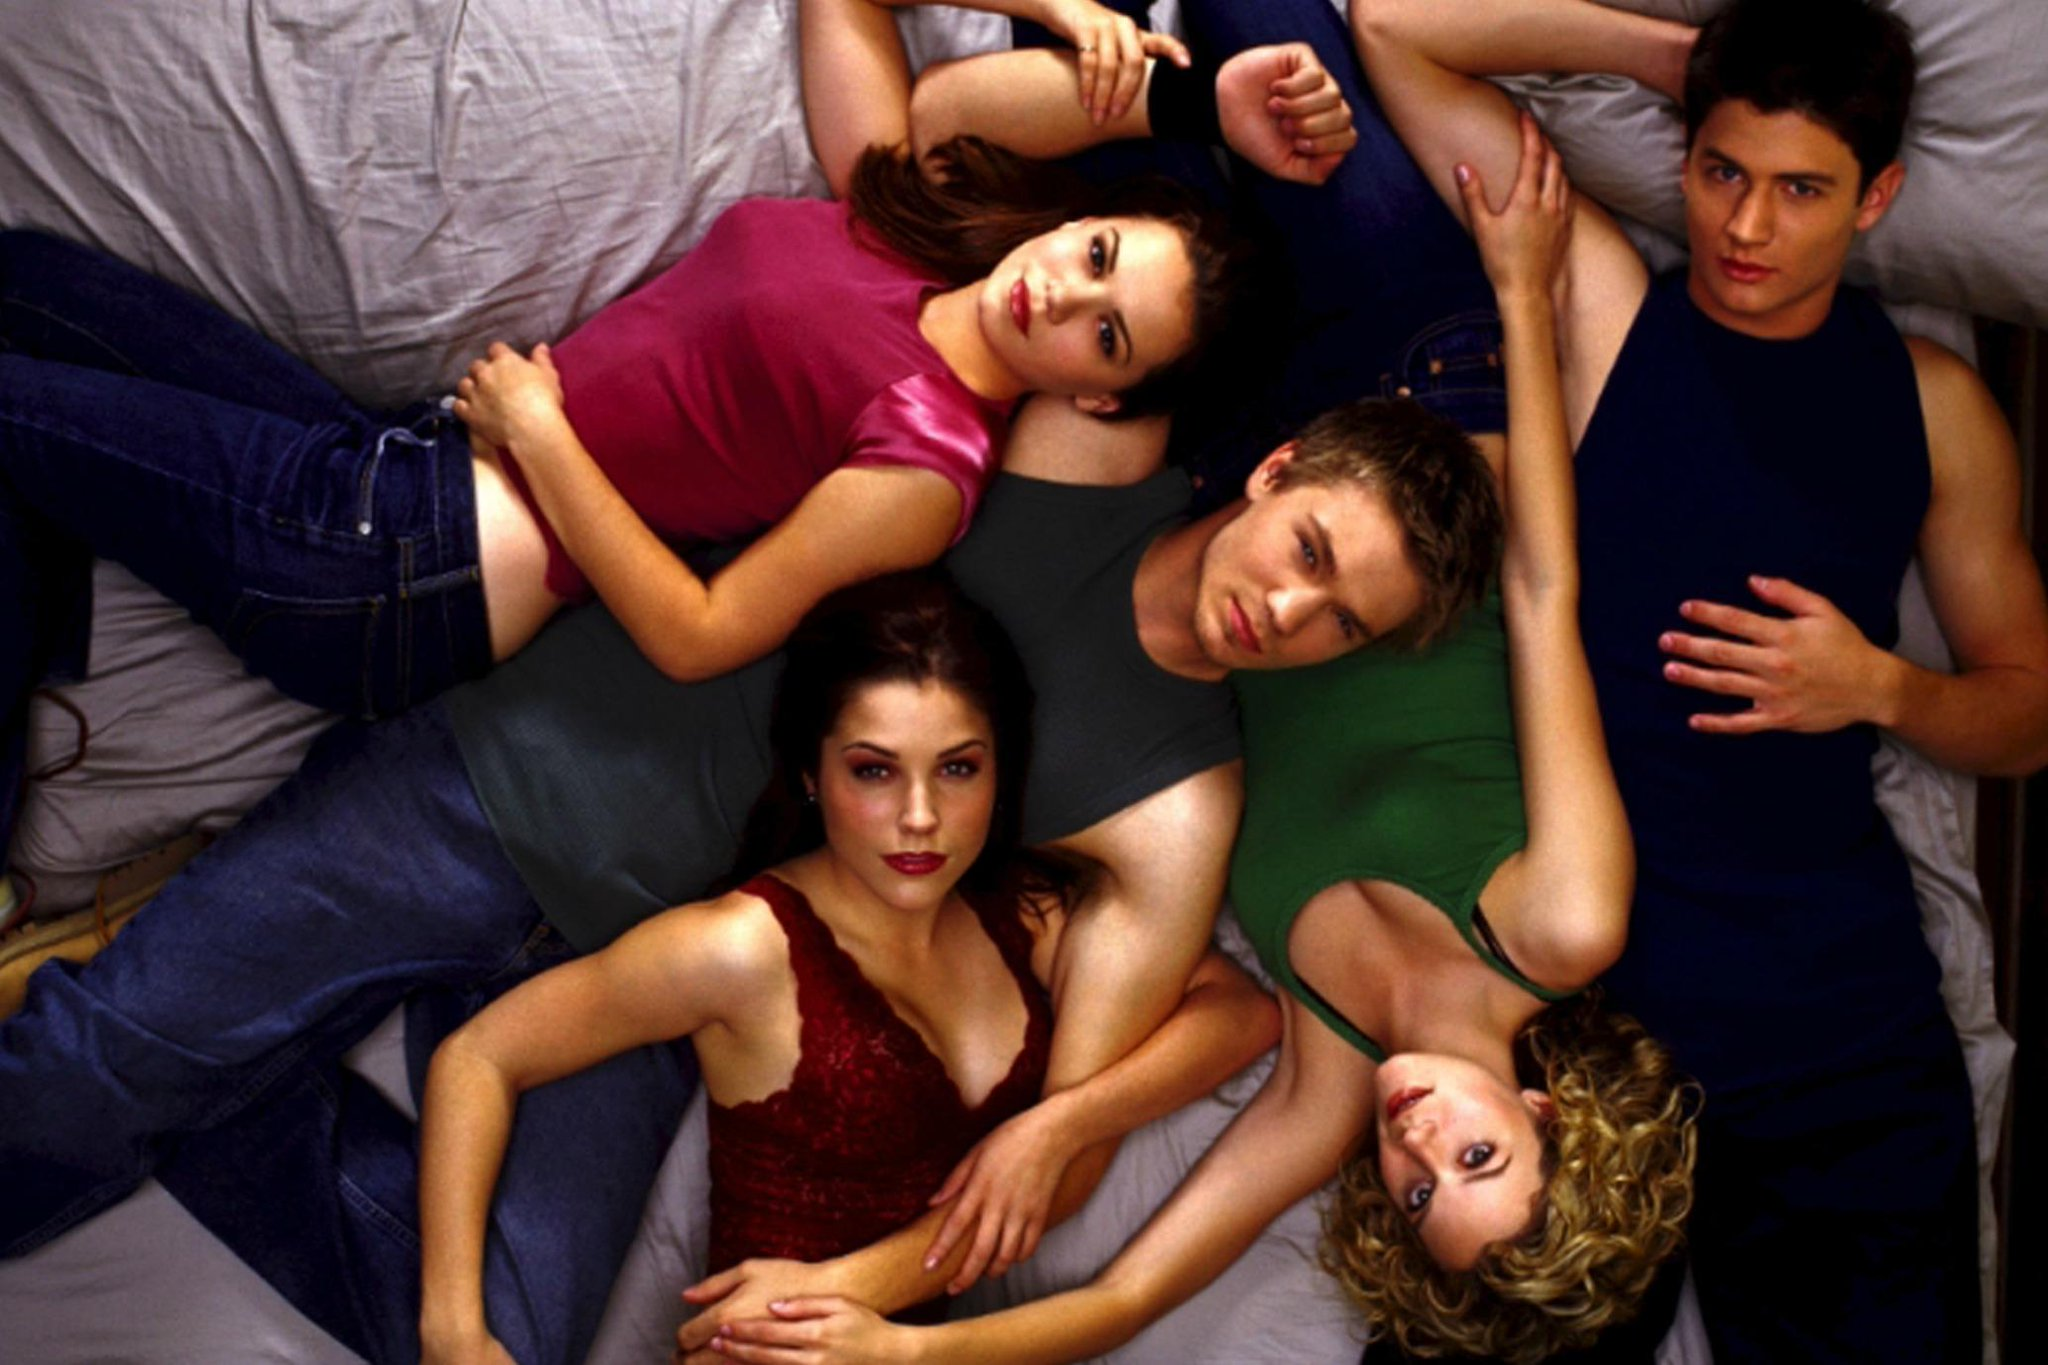 One Tree Hill cast accuse show's creator of sexual harassment https://t.co/VdHt4sXXKn https://t.co/QifzGbWFlv